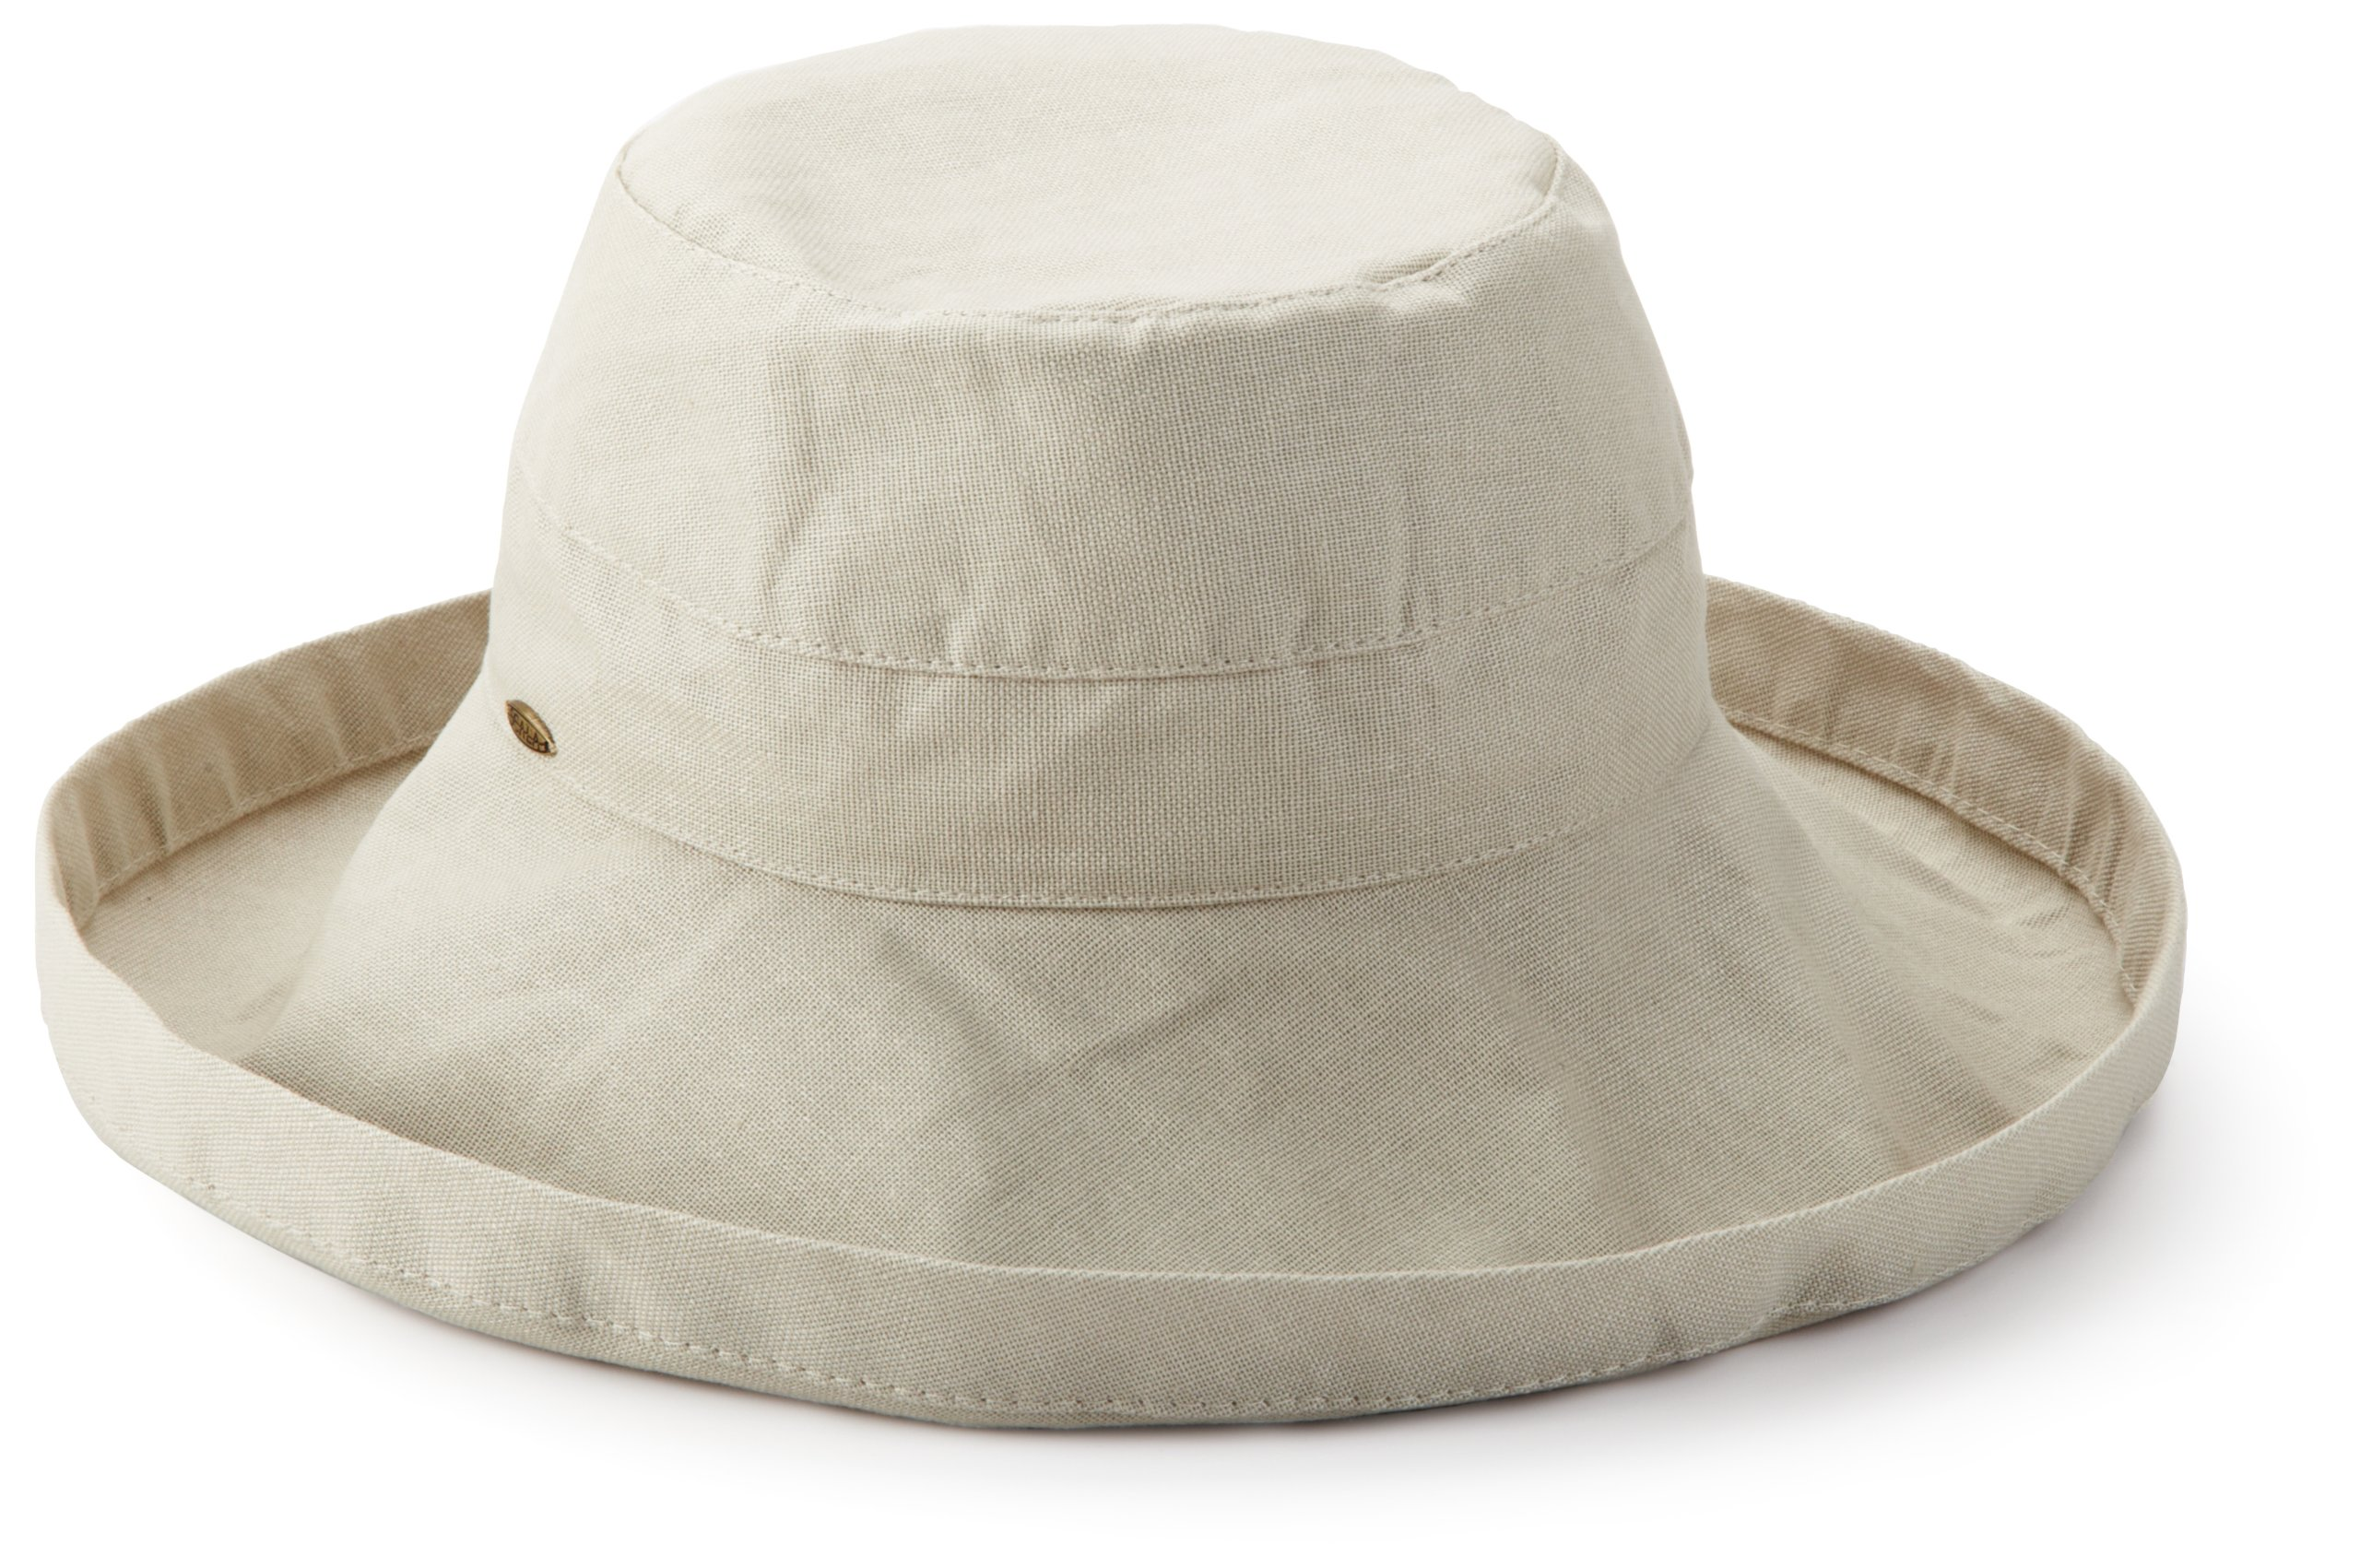 Scala Women's Cotton Hat with Inner Drawstring and Upf 50+ Rating,Oatmeal,One Size